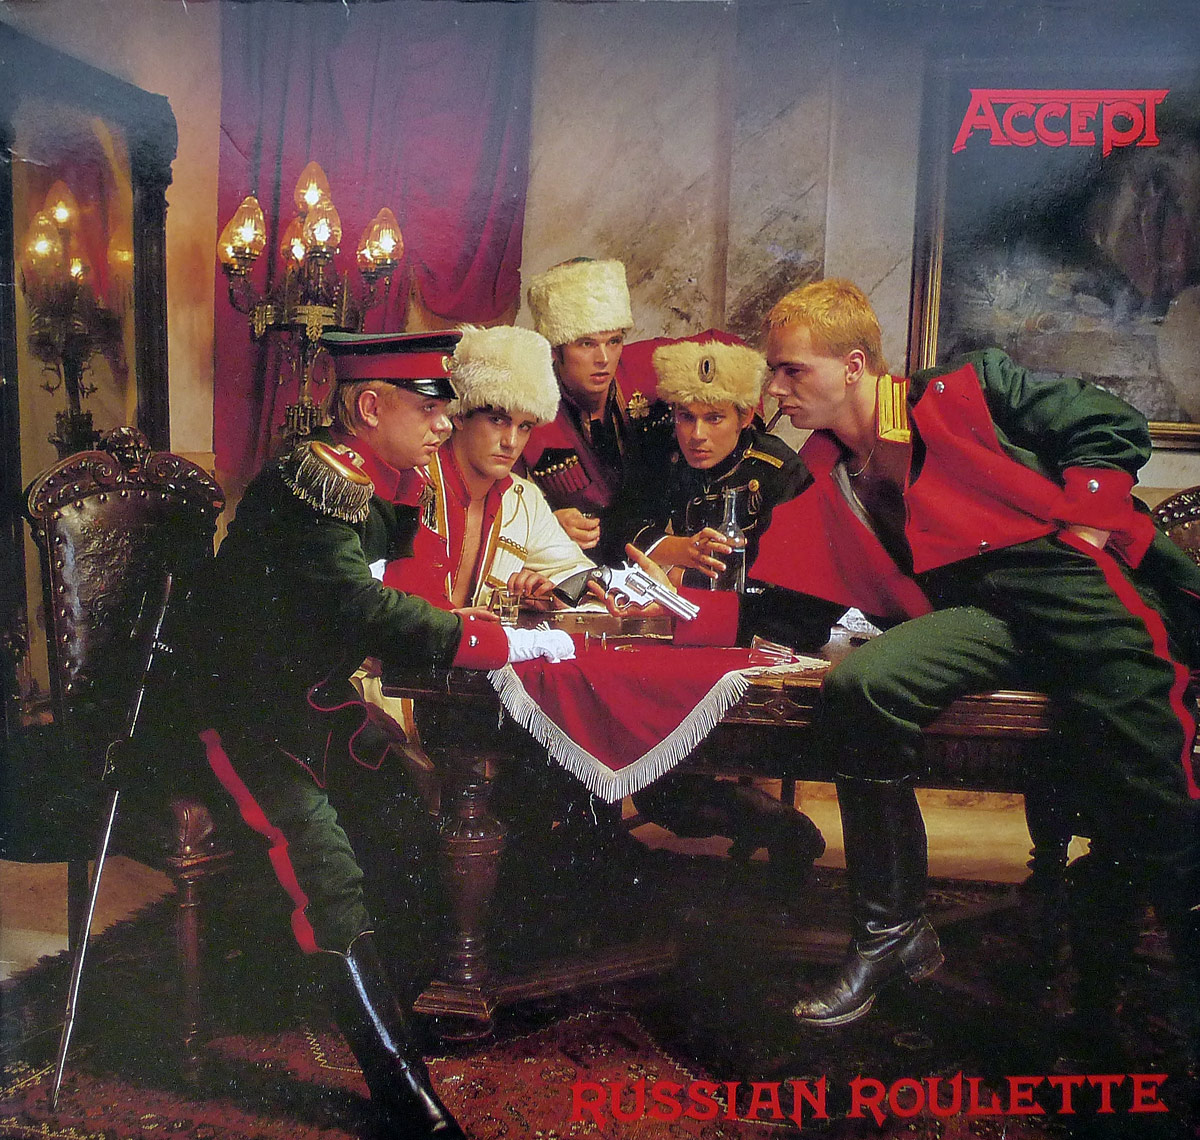 "Large Hires Photo of Front Cover of ""Russian Roulette"" by Accept"